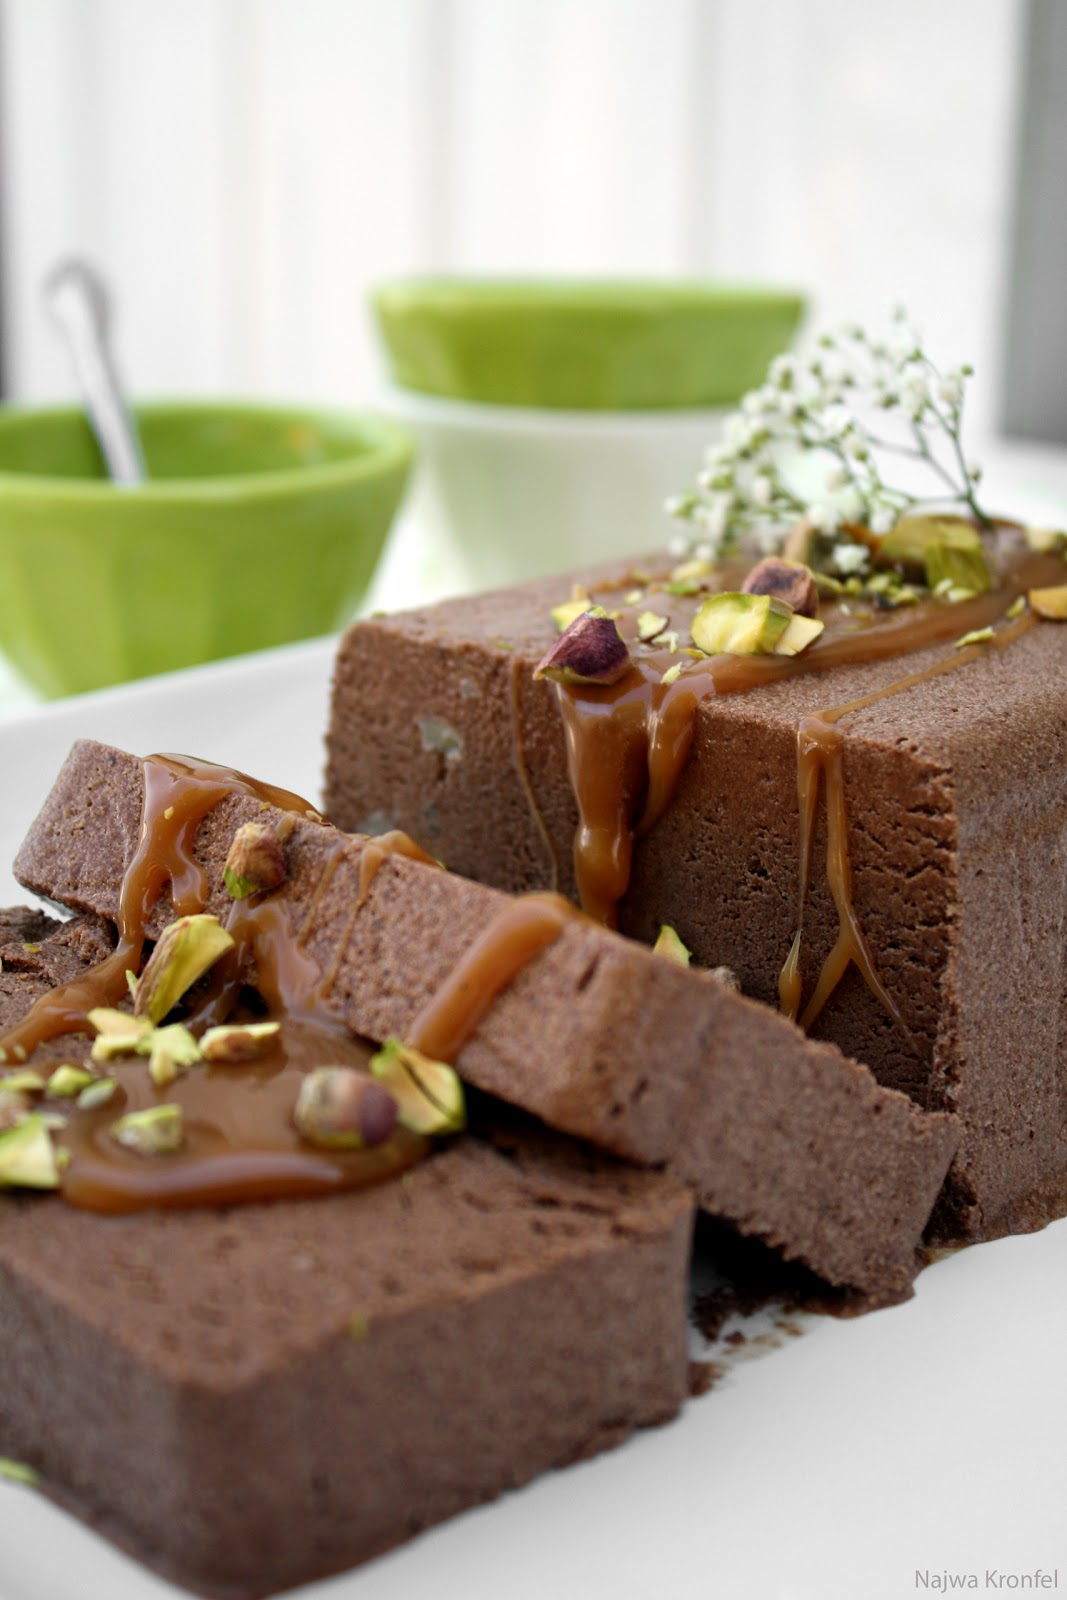 Delicious Shots: Chocolate-Coffee Semifreddo with Salted Caramel Sauce